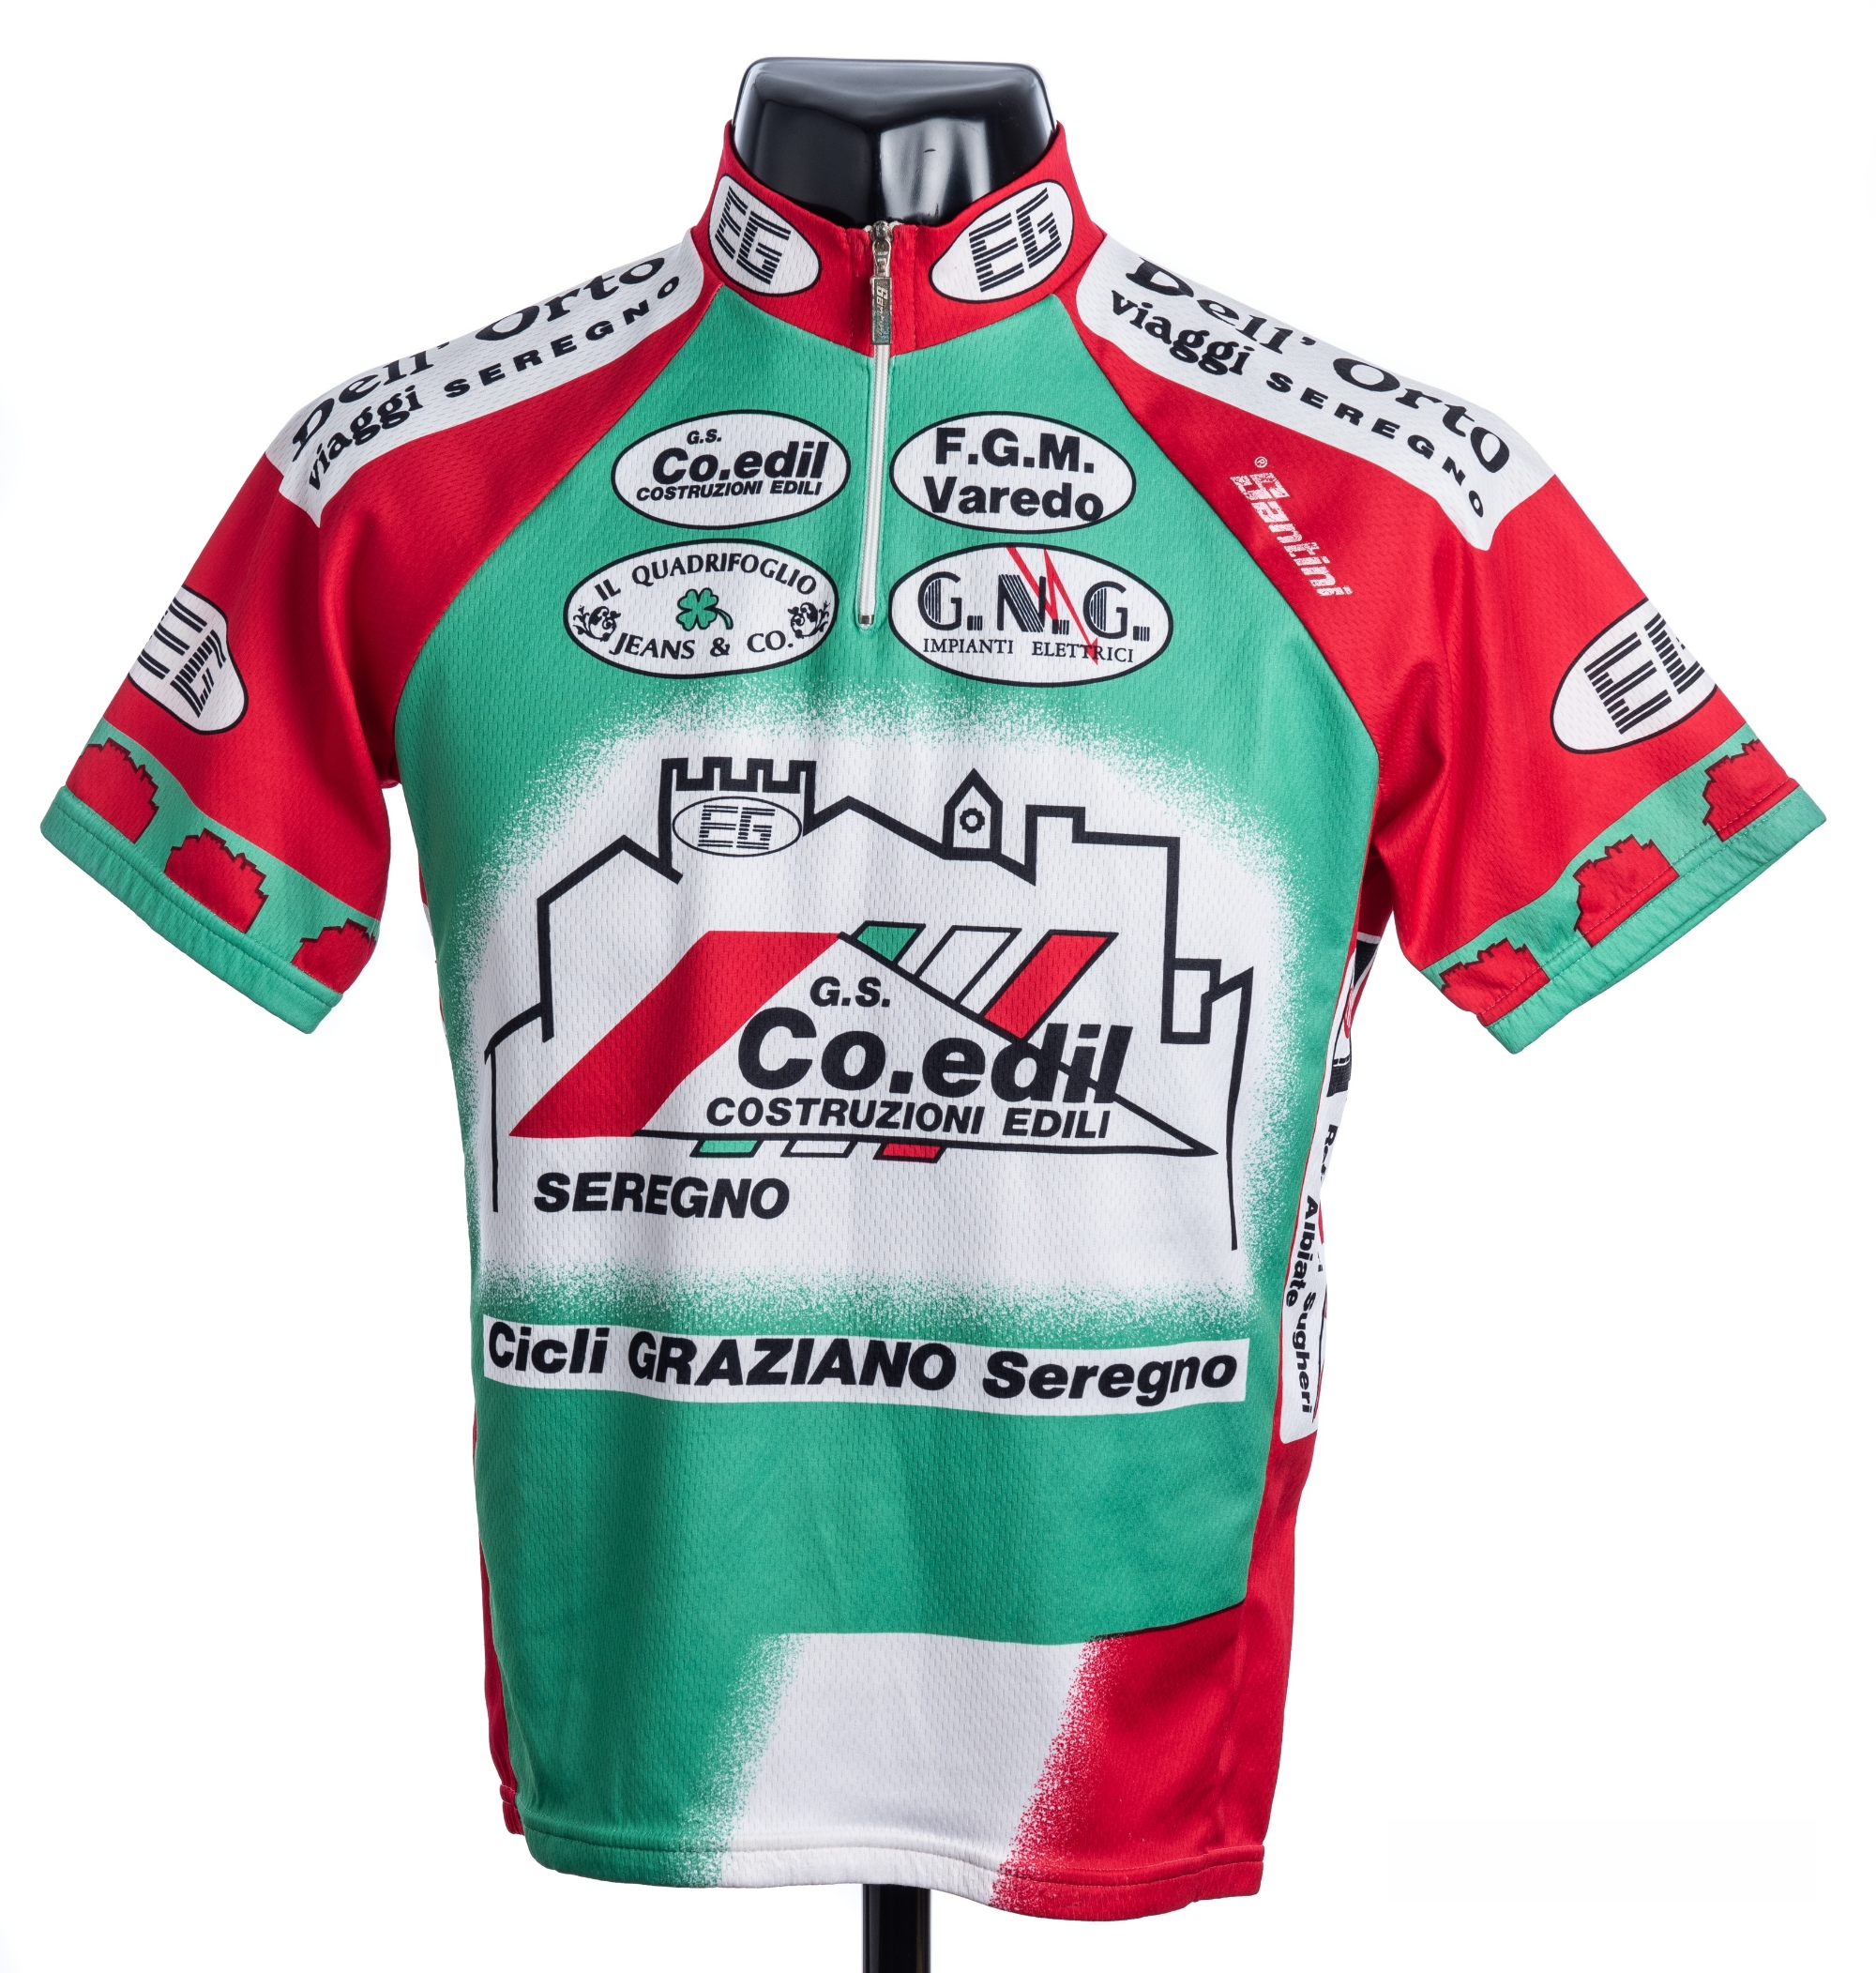 1998 red, green and white Italian Santini FGM Varedo Cycling race jersey, scarce, polyester and - Image 3 of 4